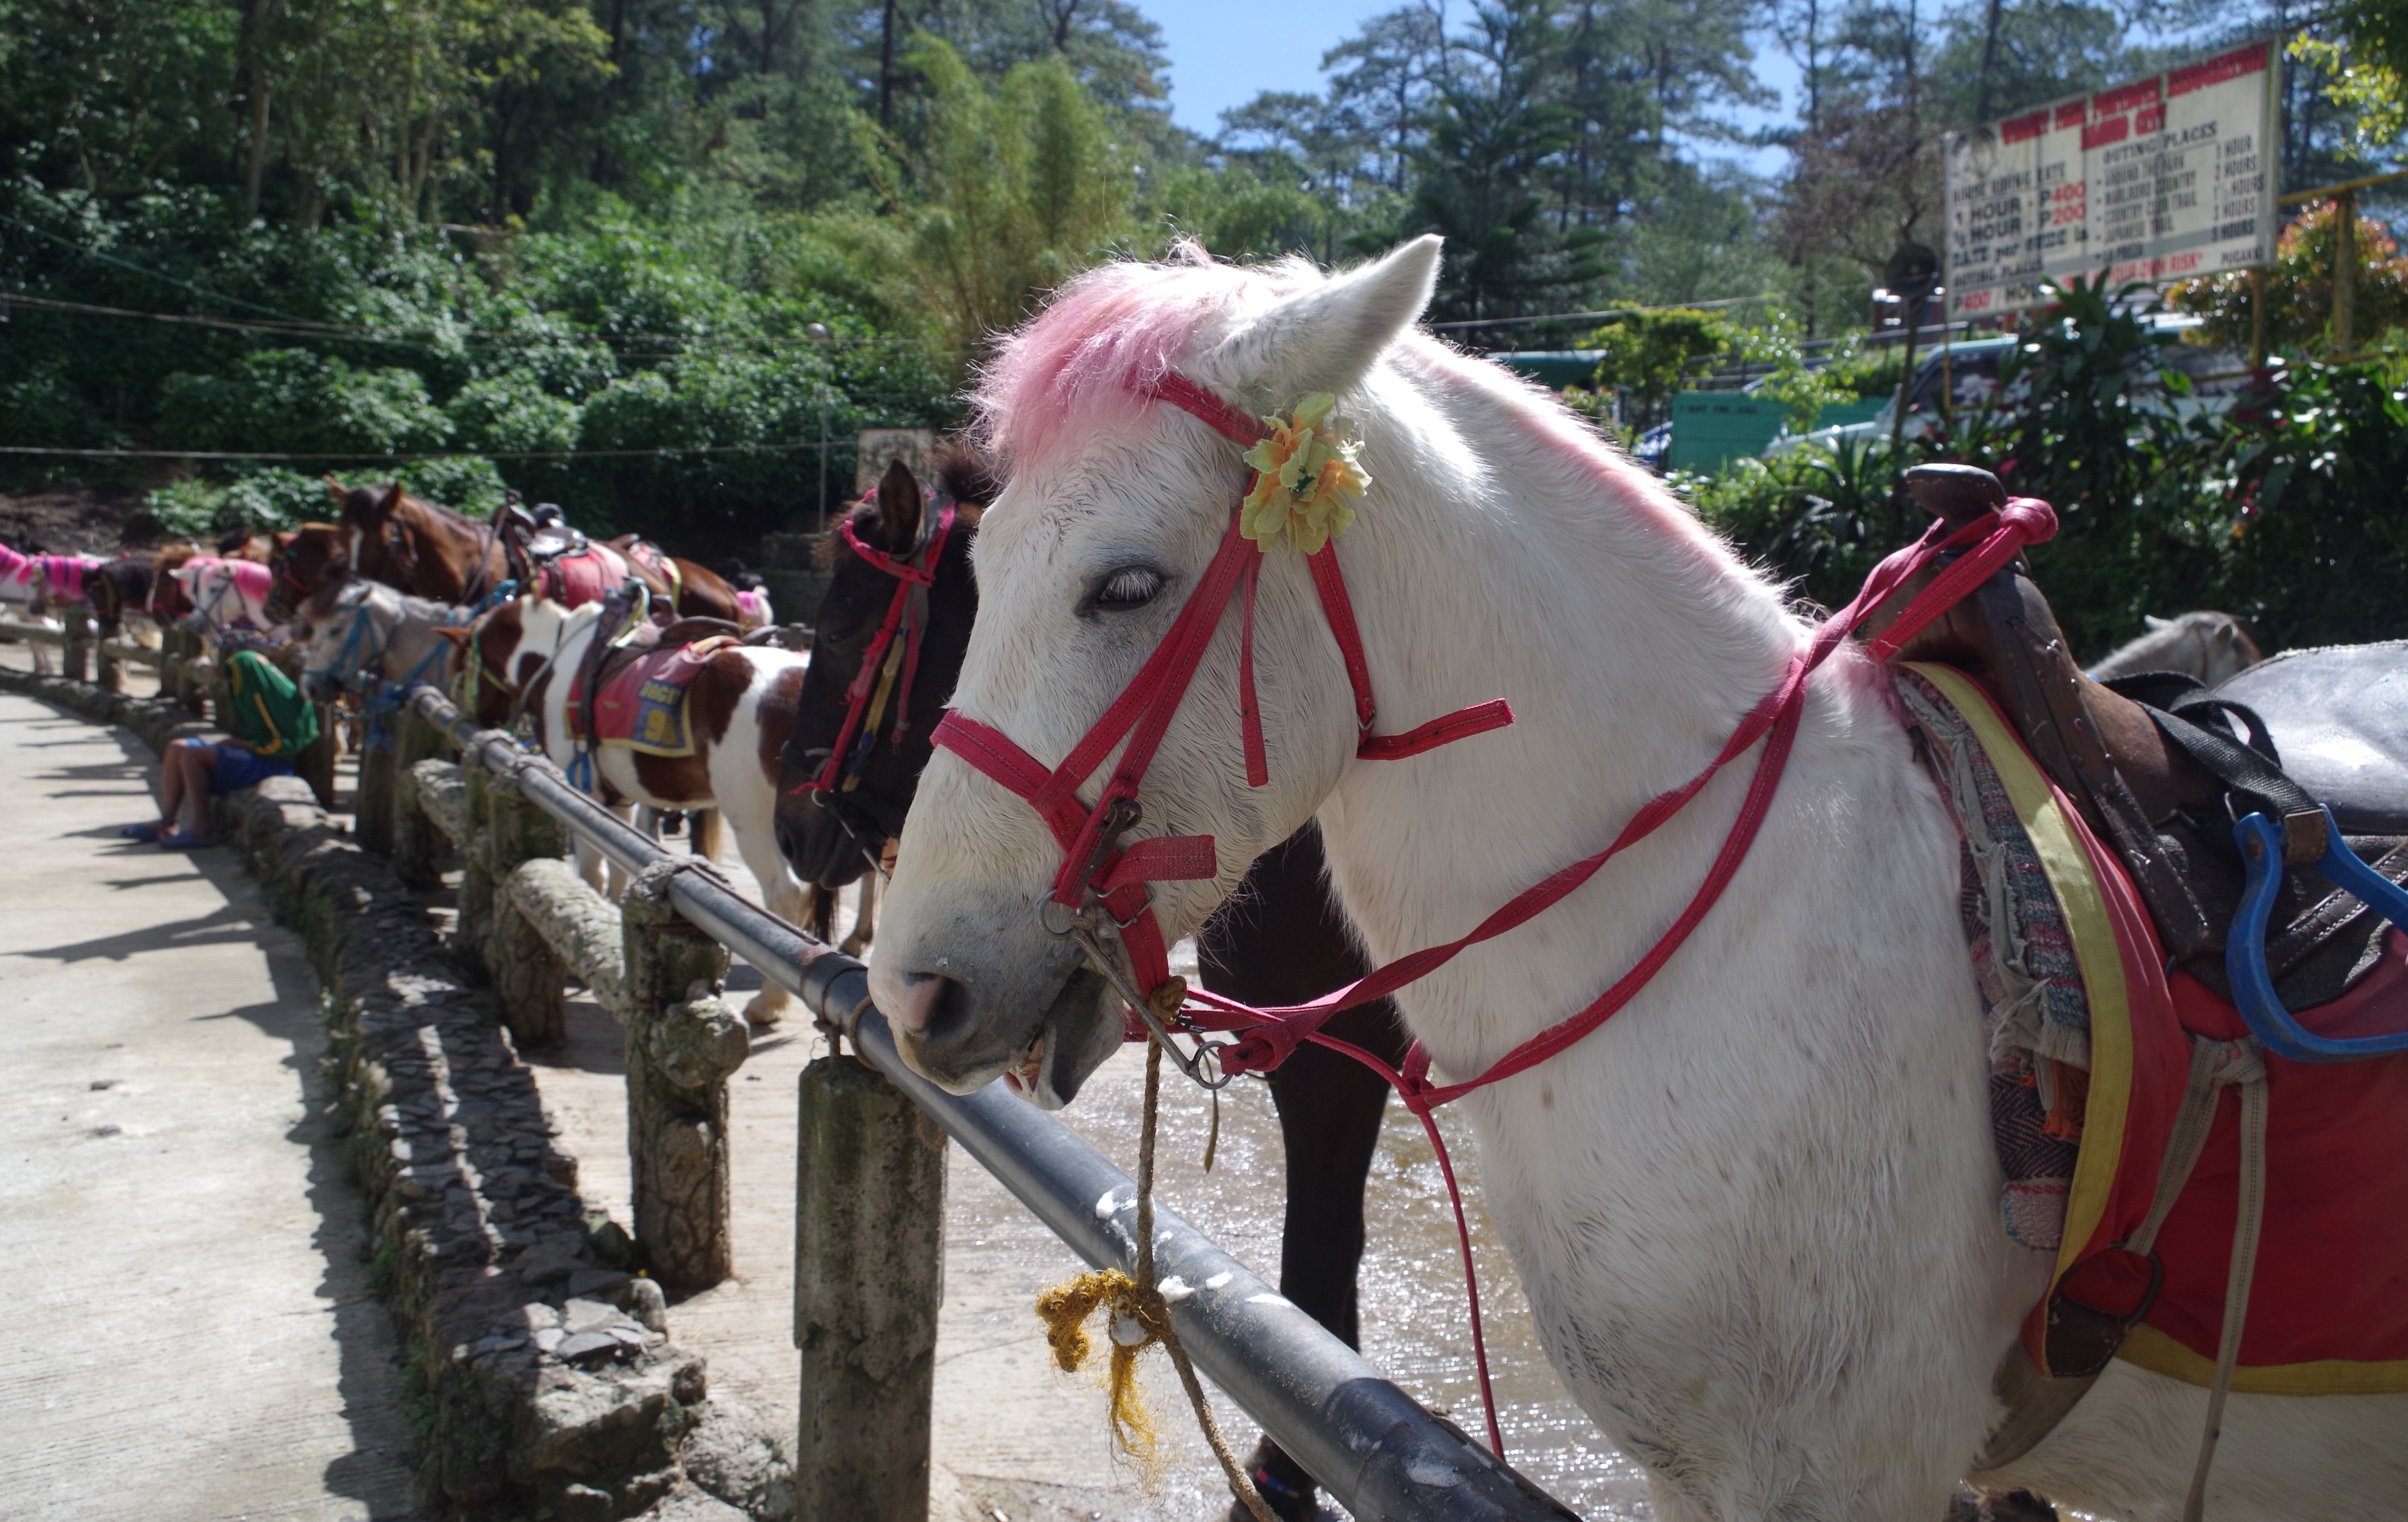 White horses at The Wright Park in Baguio